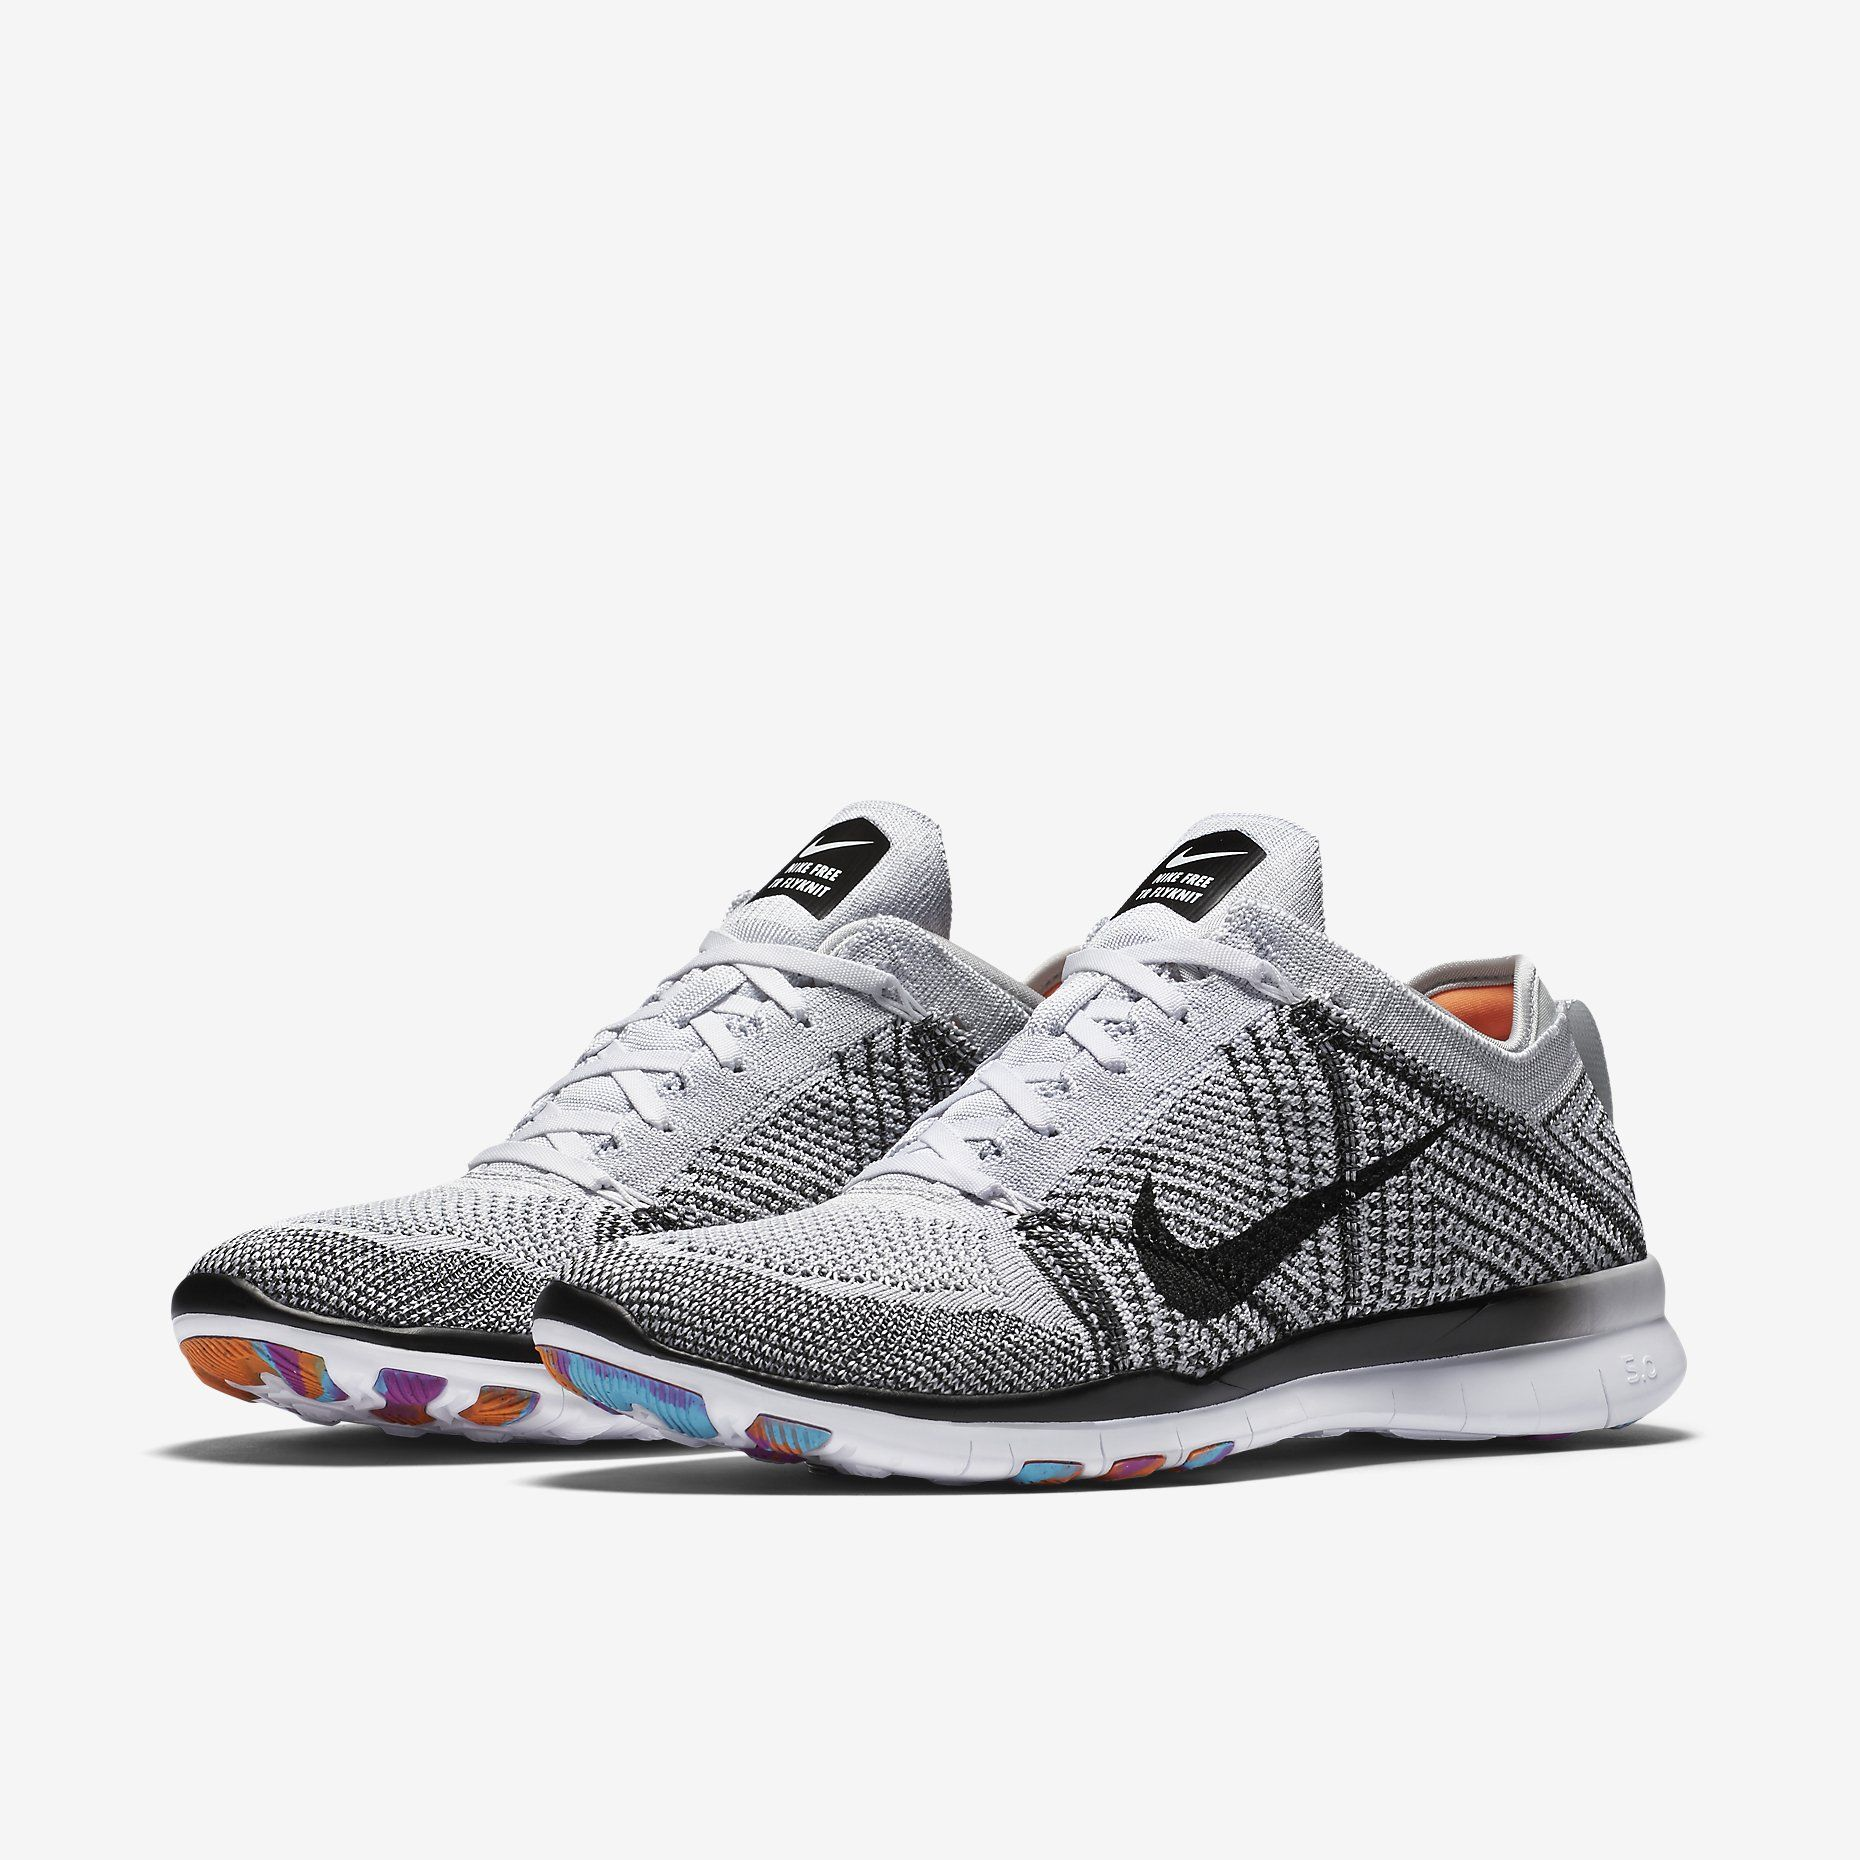 Nike Free TR 5 Flyknit White/Pure Platinum/Hyper Violet - Nike Trainers Factory Store Online - NIKE.